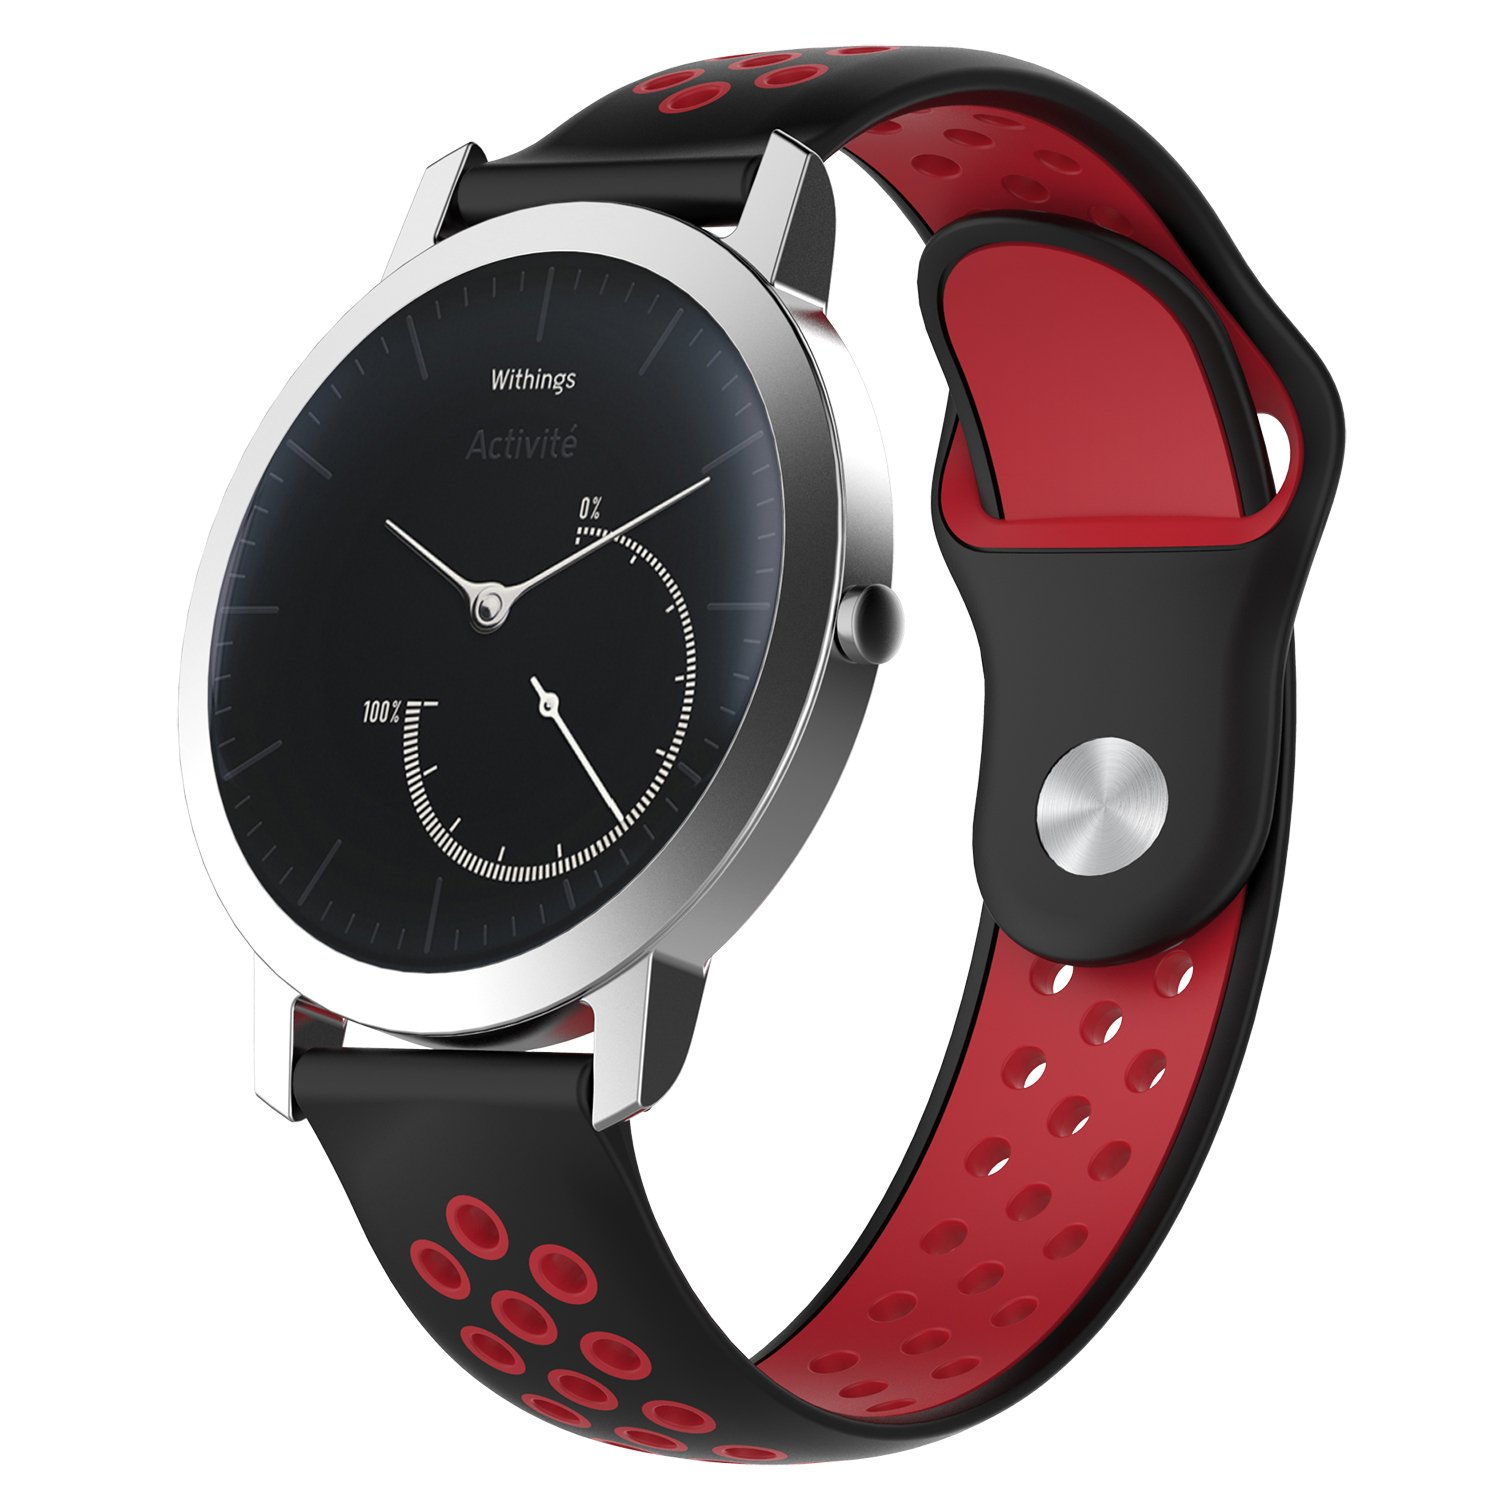 Pinhen 18mm Watch Band, 18mm Quick Silicone Replacement Strap for Nokia Withings Activite/Steel HR 36mm, Huawei Watch (Black Red)